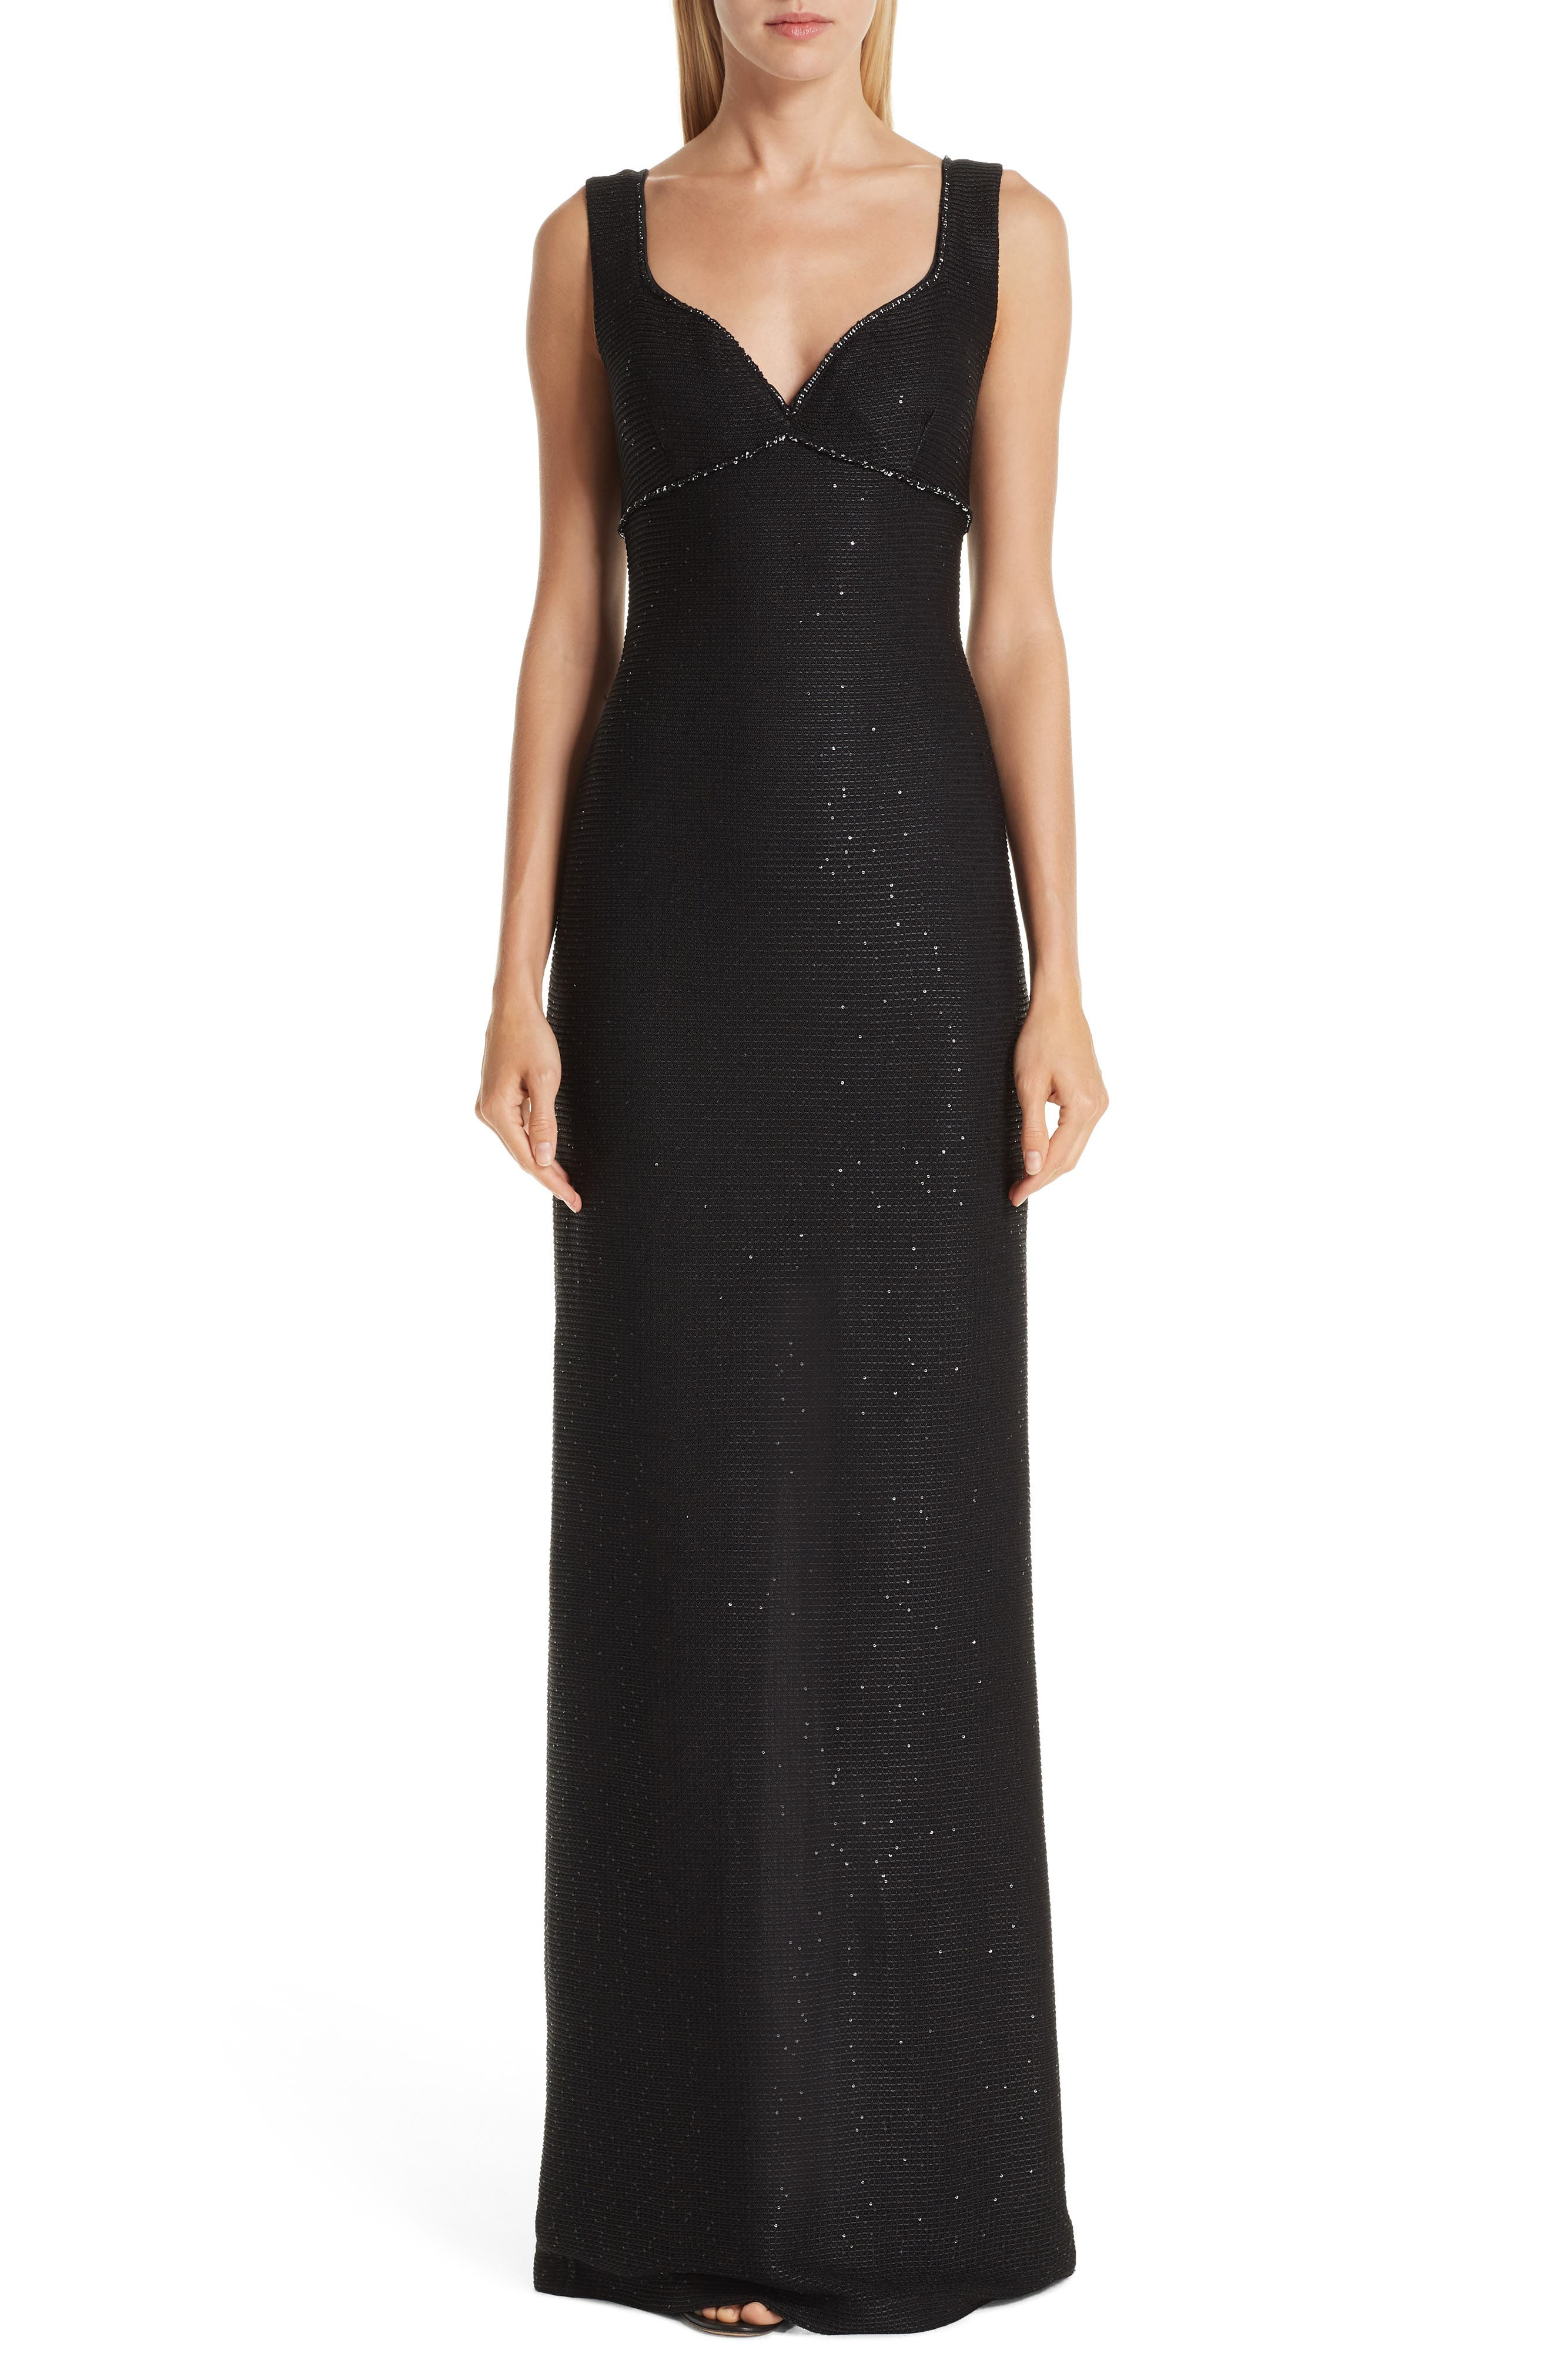 ST. JOHN COLLECTION, Links Sequin Knit Gown, Main thumbnail 1, color, CAVIAR